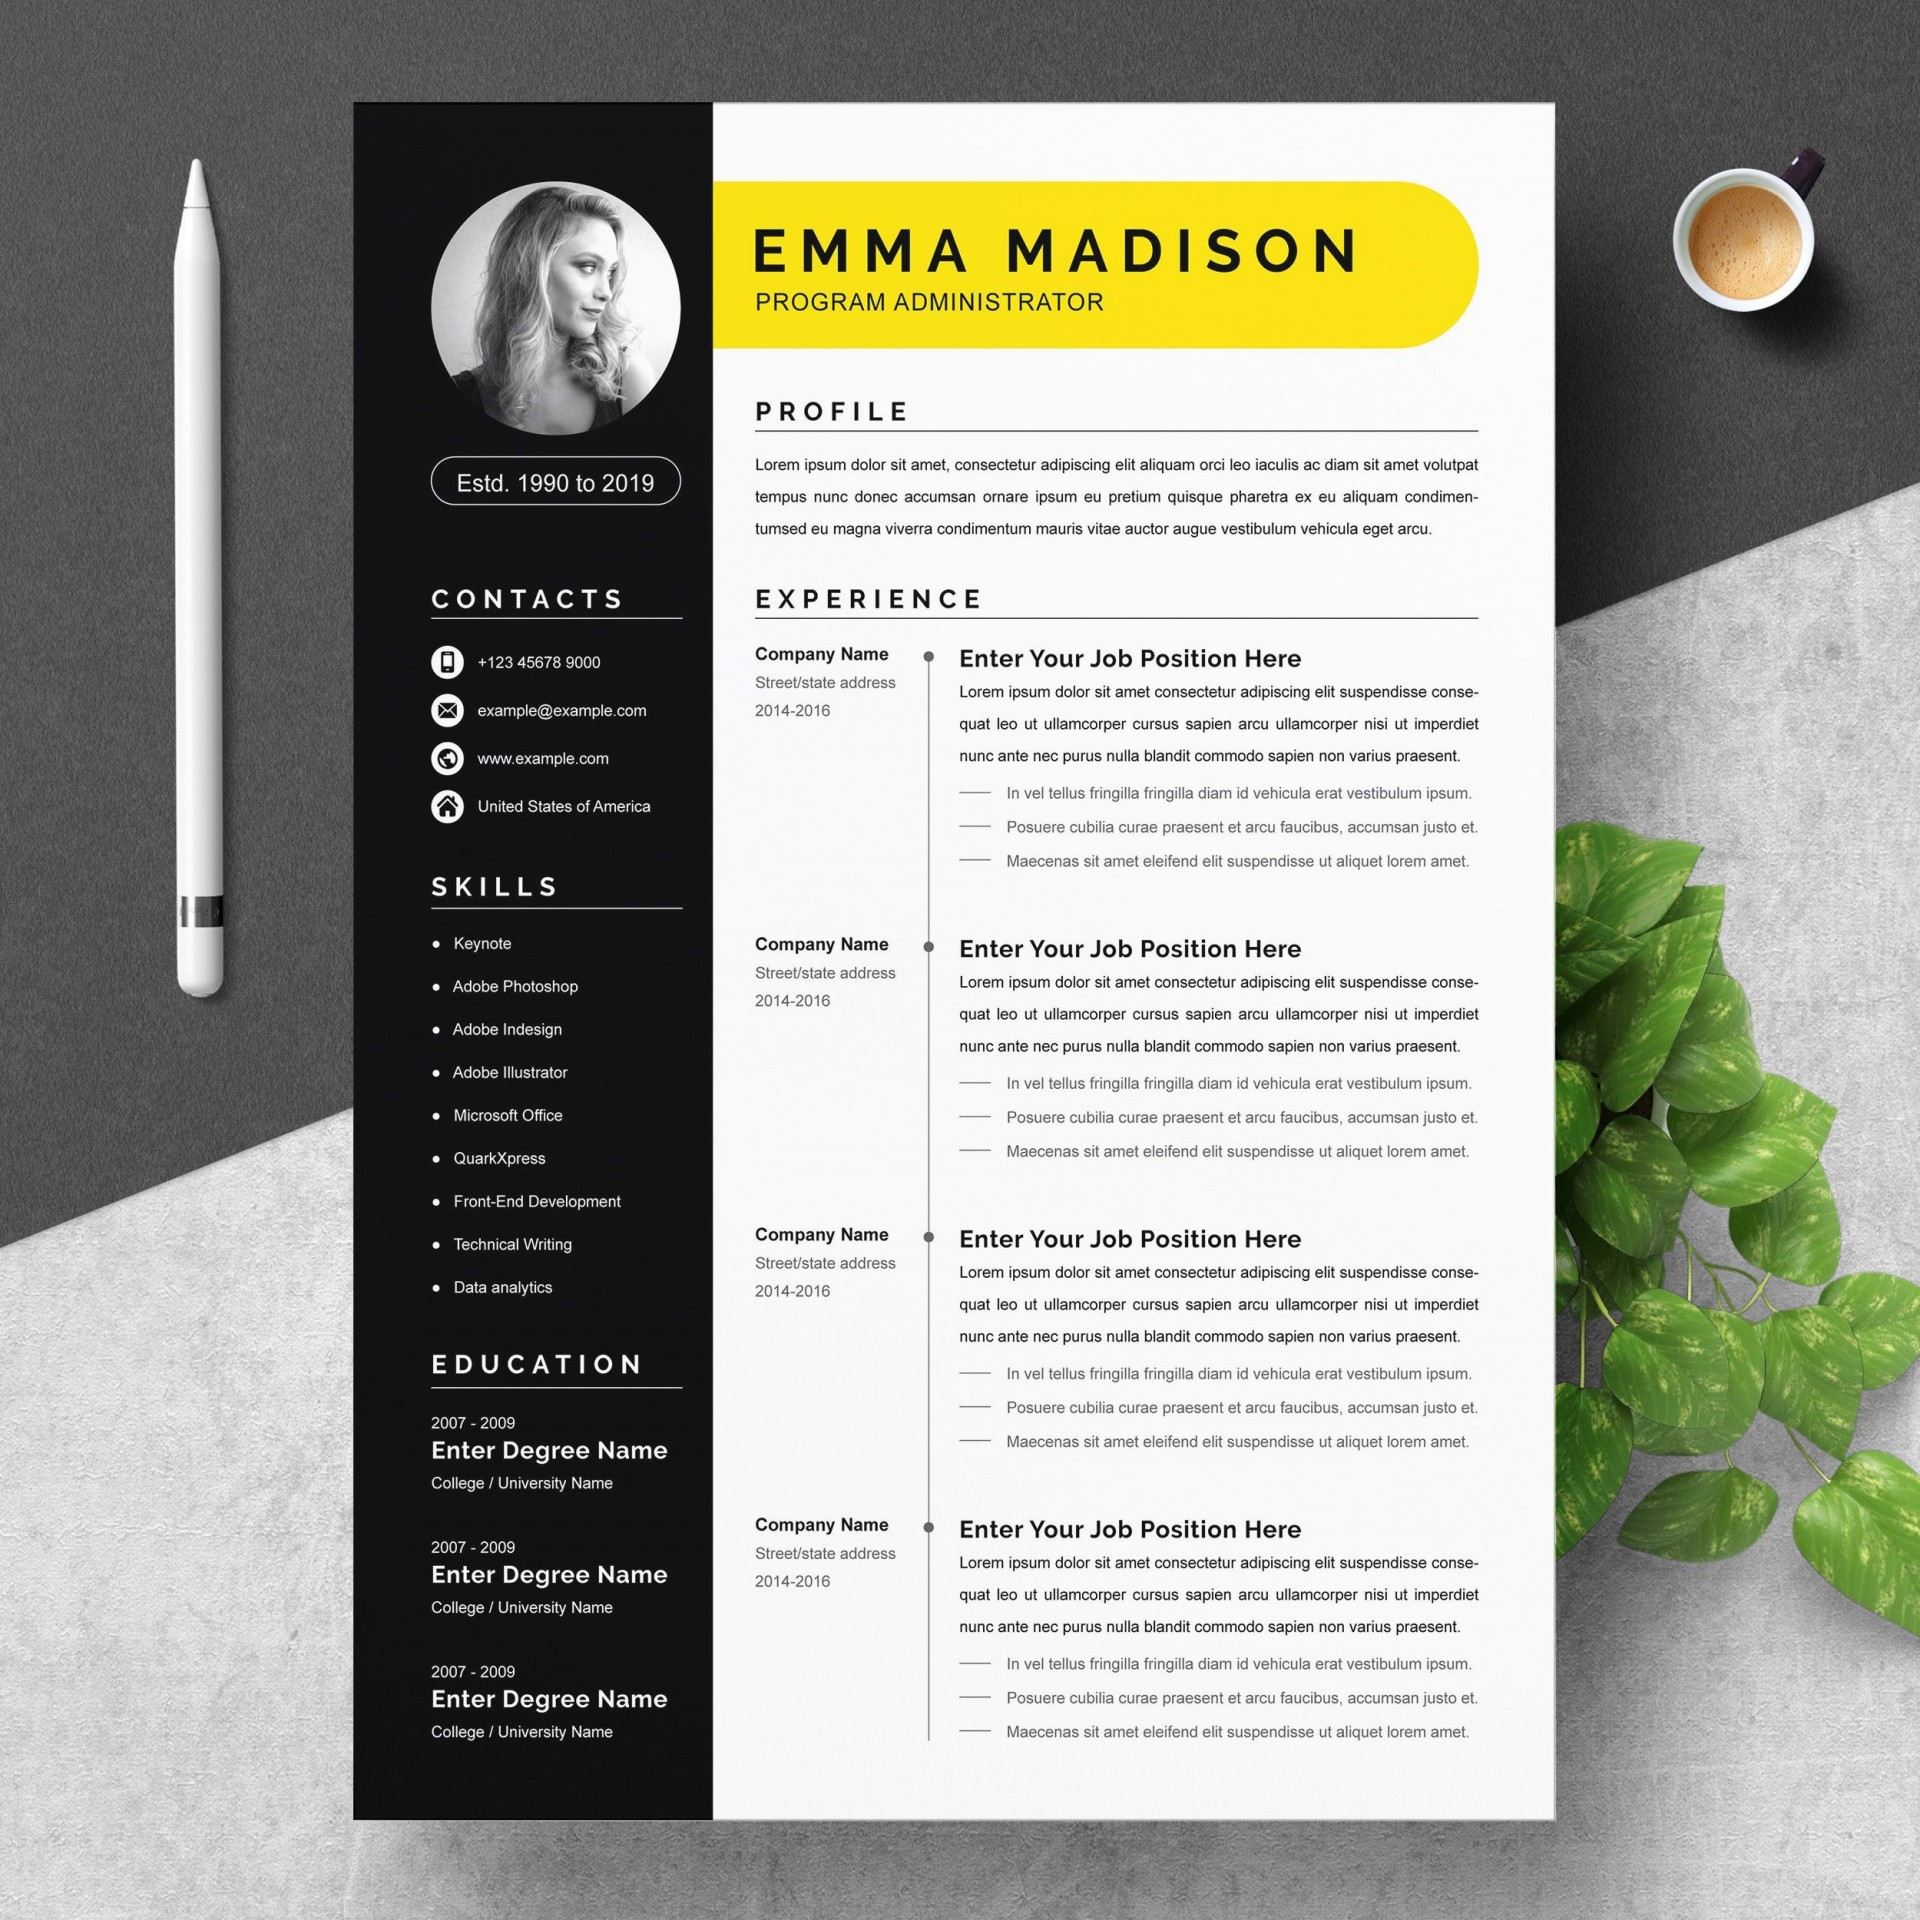 000 Breathtaking Resume Template Word 2007 Free Highest Clarity  Microsoft Office For M1920